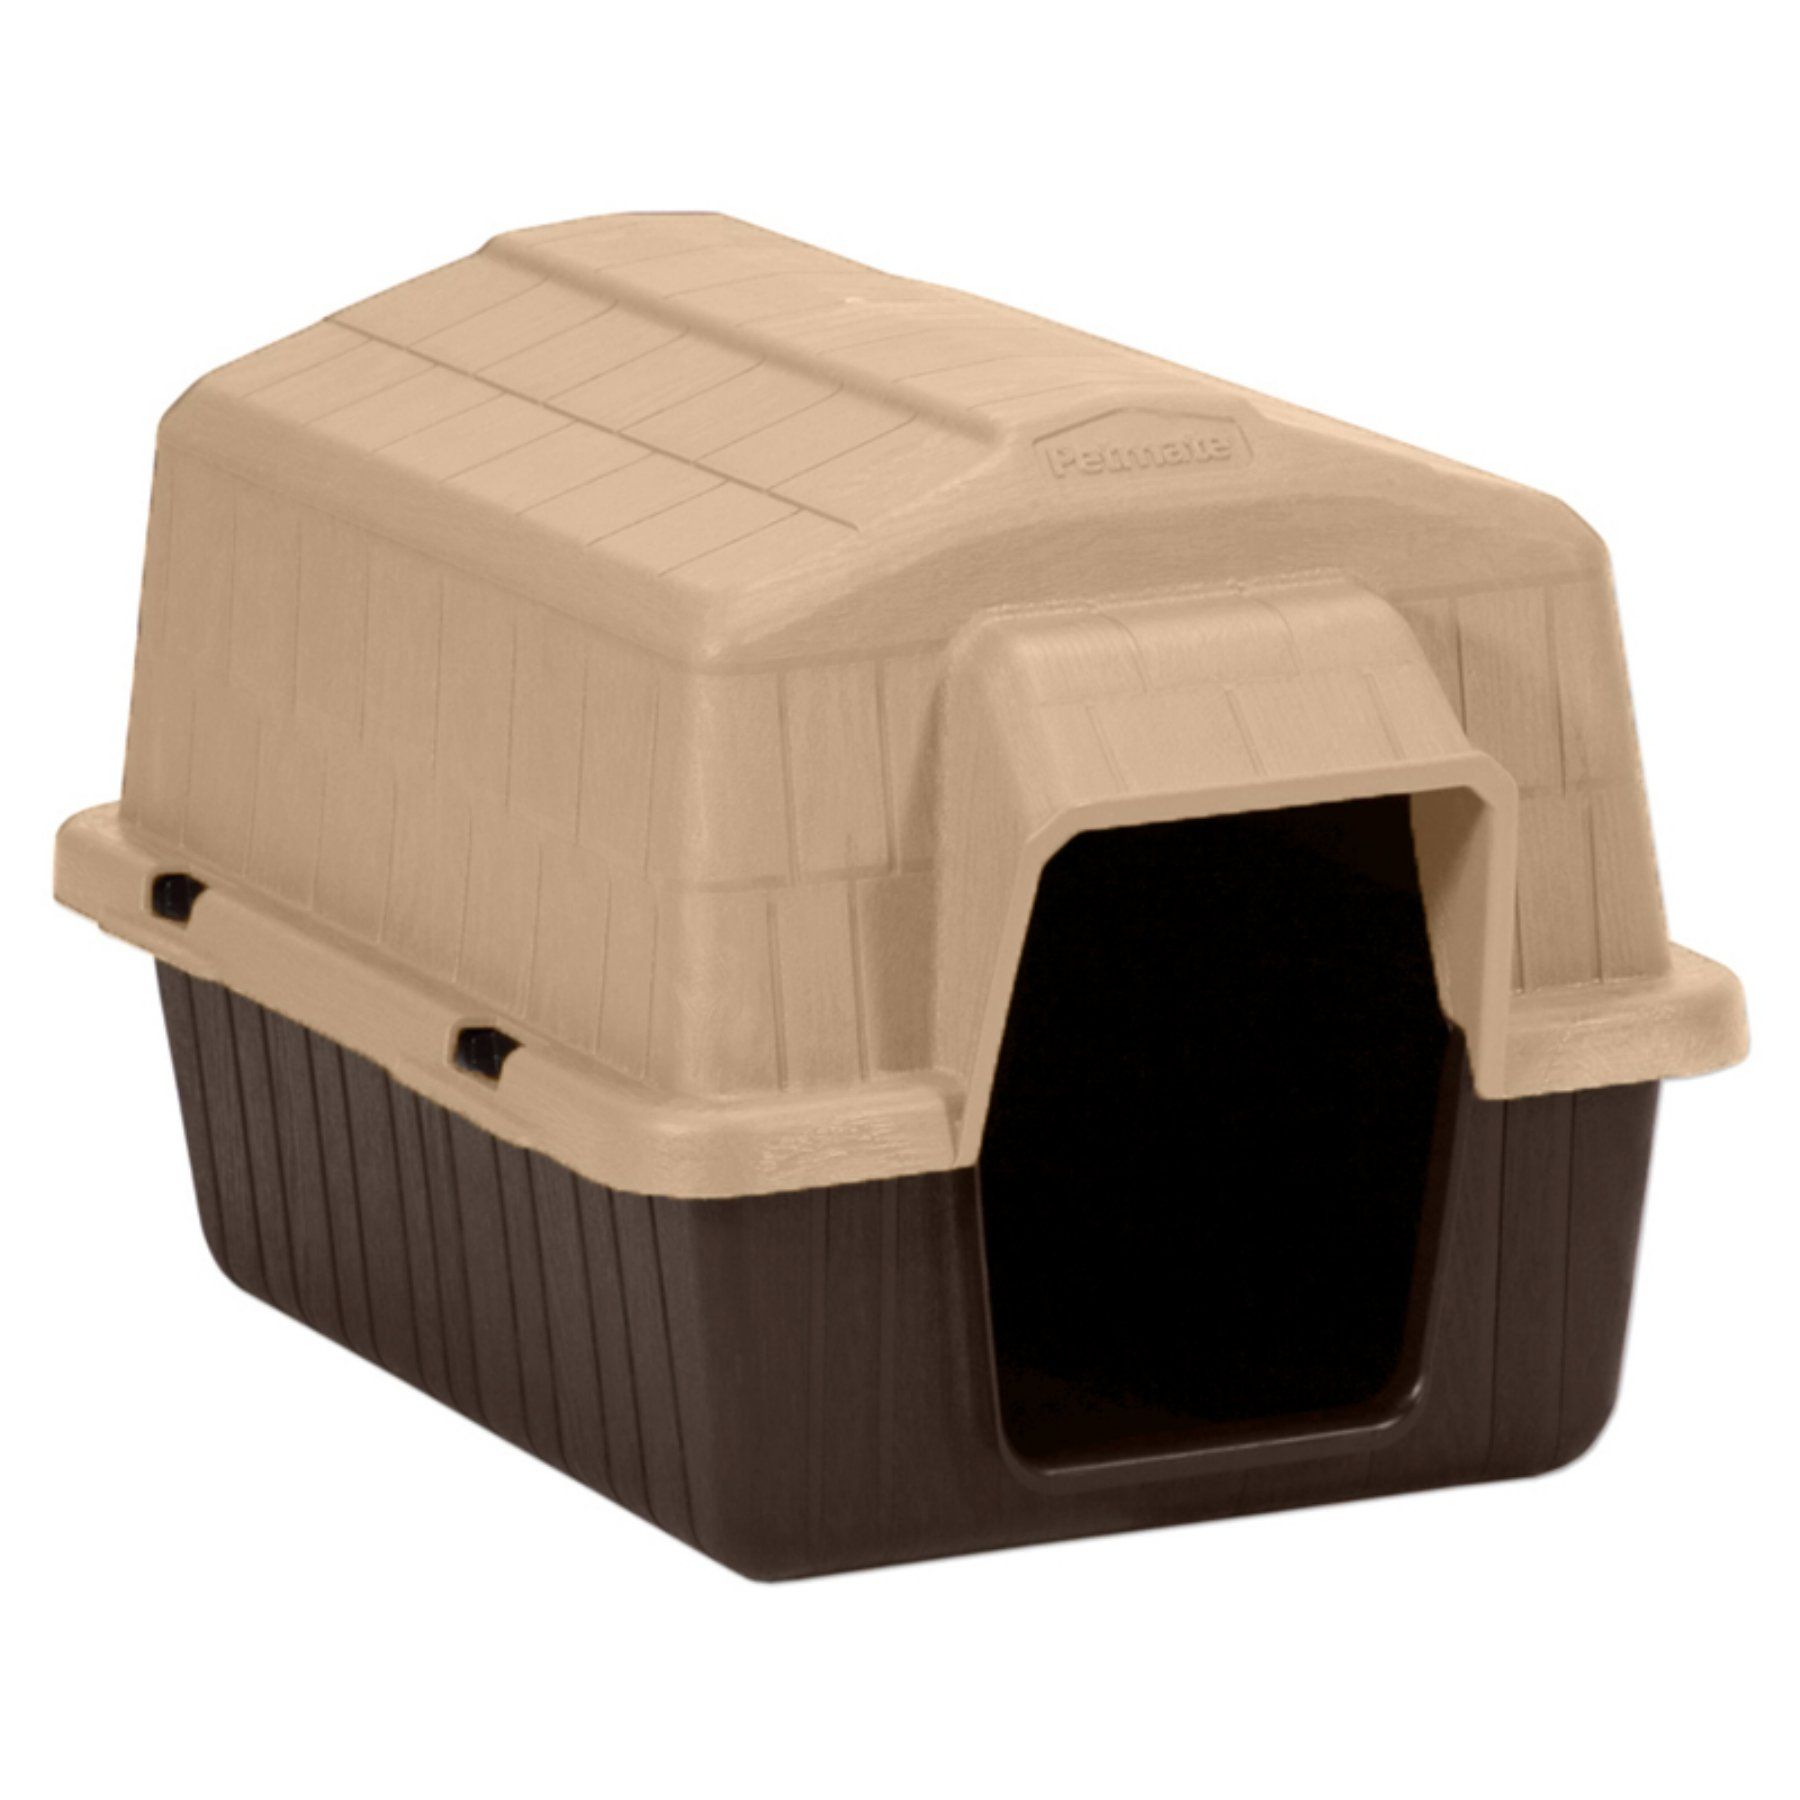 Aspen Pet Pet Barn 3 Plastic Dog House Xsmall 25180 Plastic Dog House Pet Mat Outdoor Dog